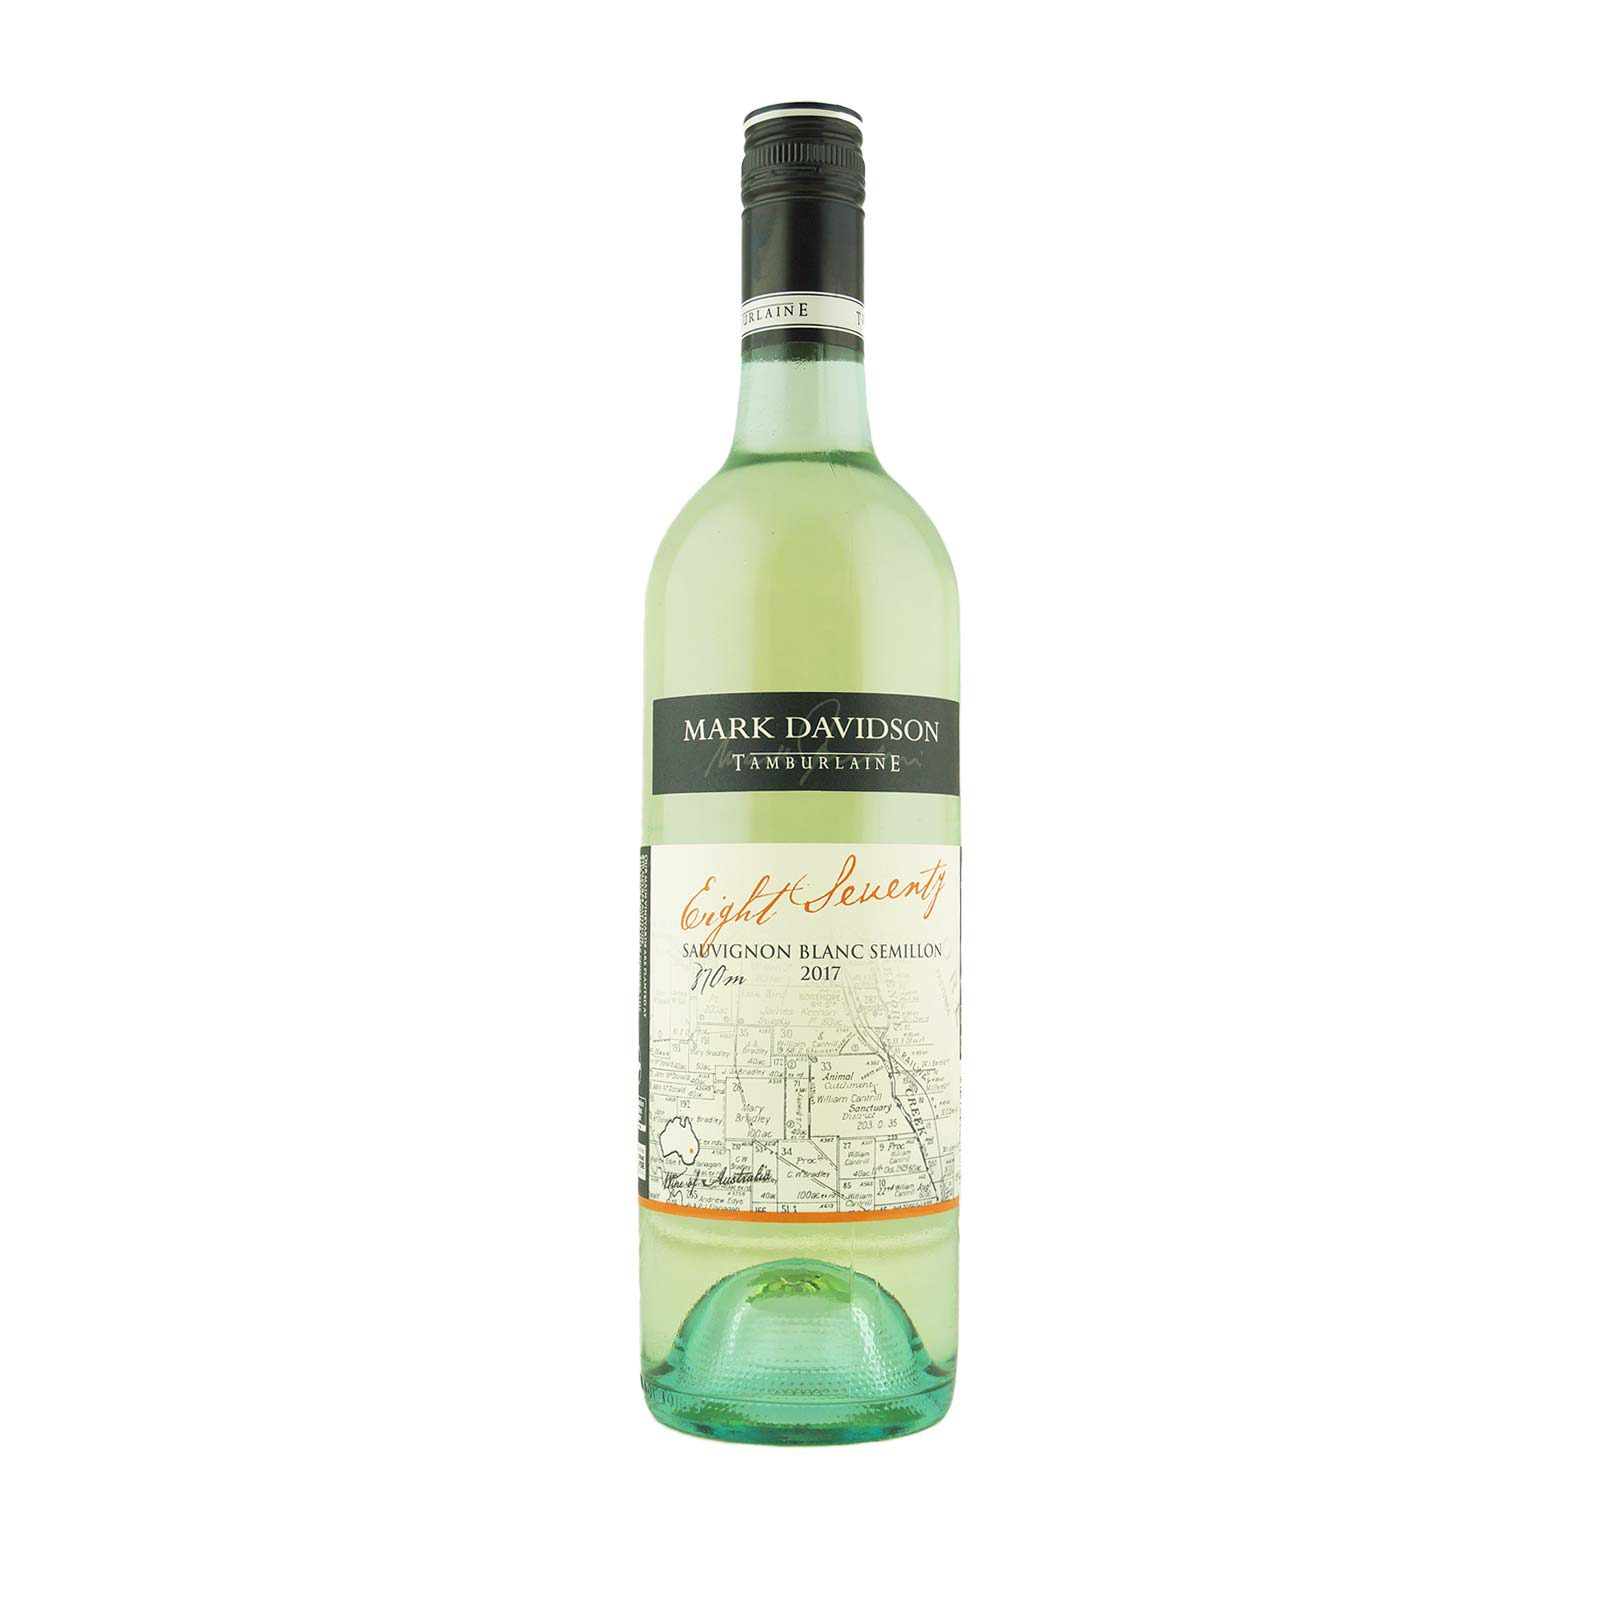 products-tamburlaine-sauvigon-blanc-semillon-a